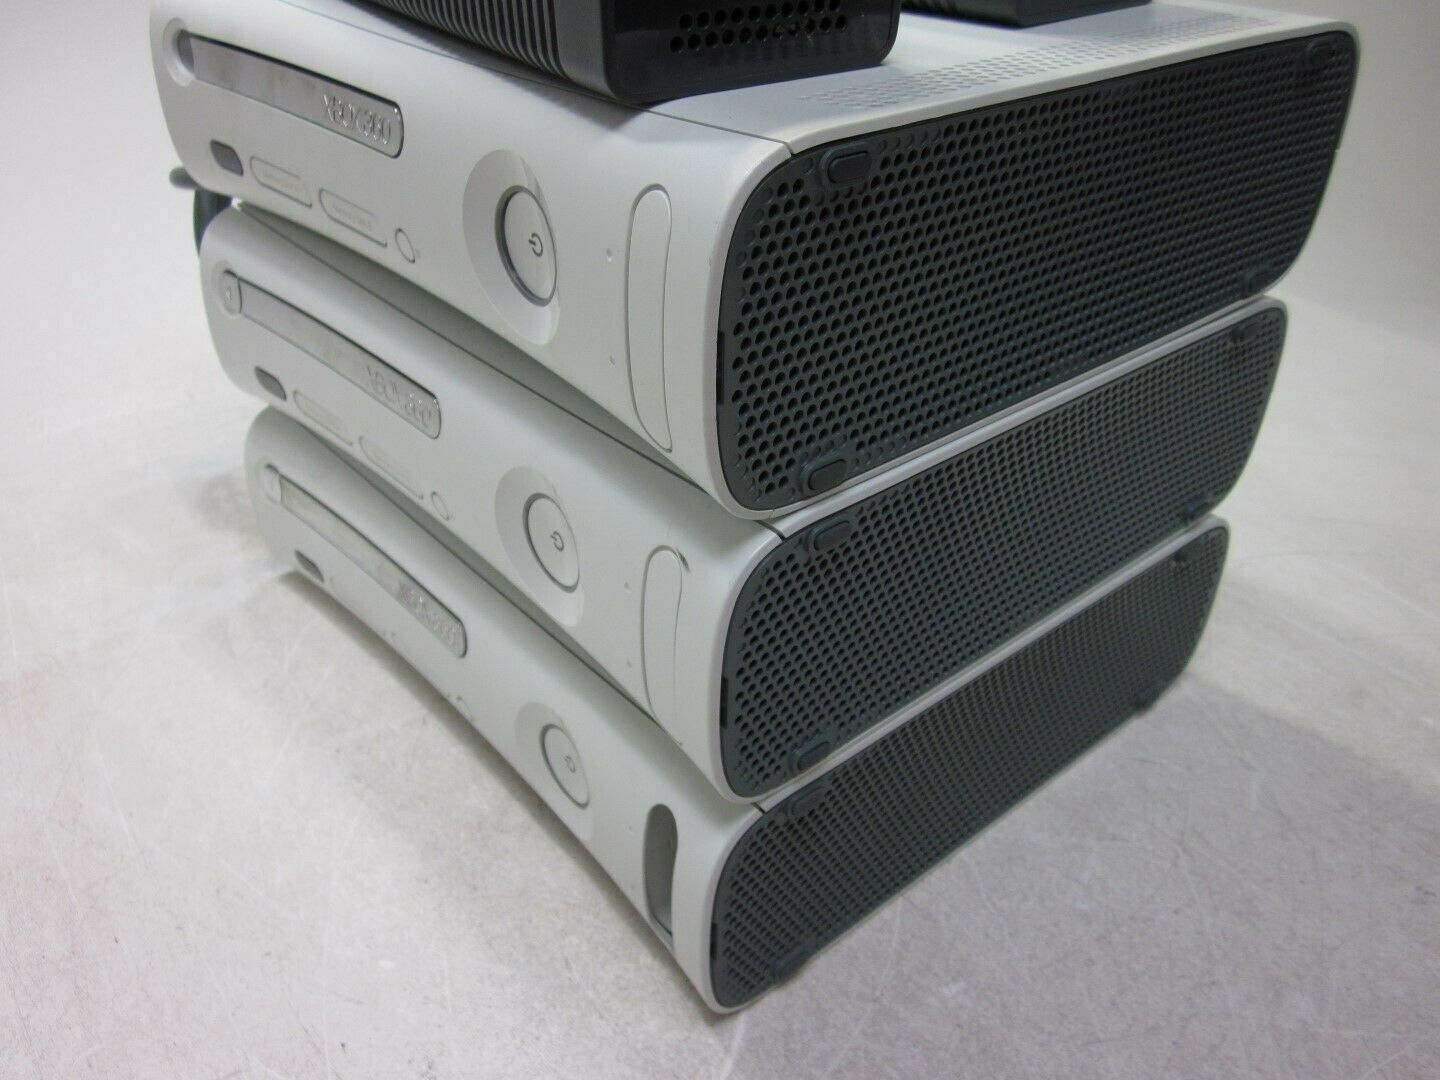 Lot of 3 Microsoft Xbox 360 Consoles 2x Power Supplies Red Ring AS-IS